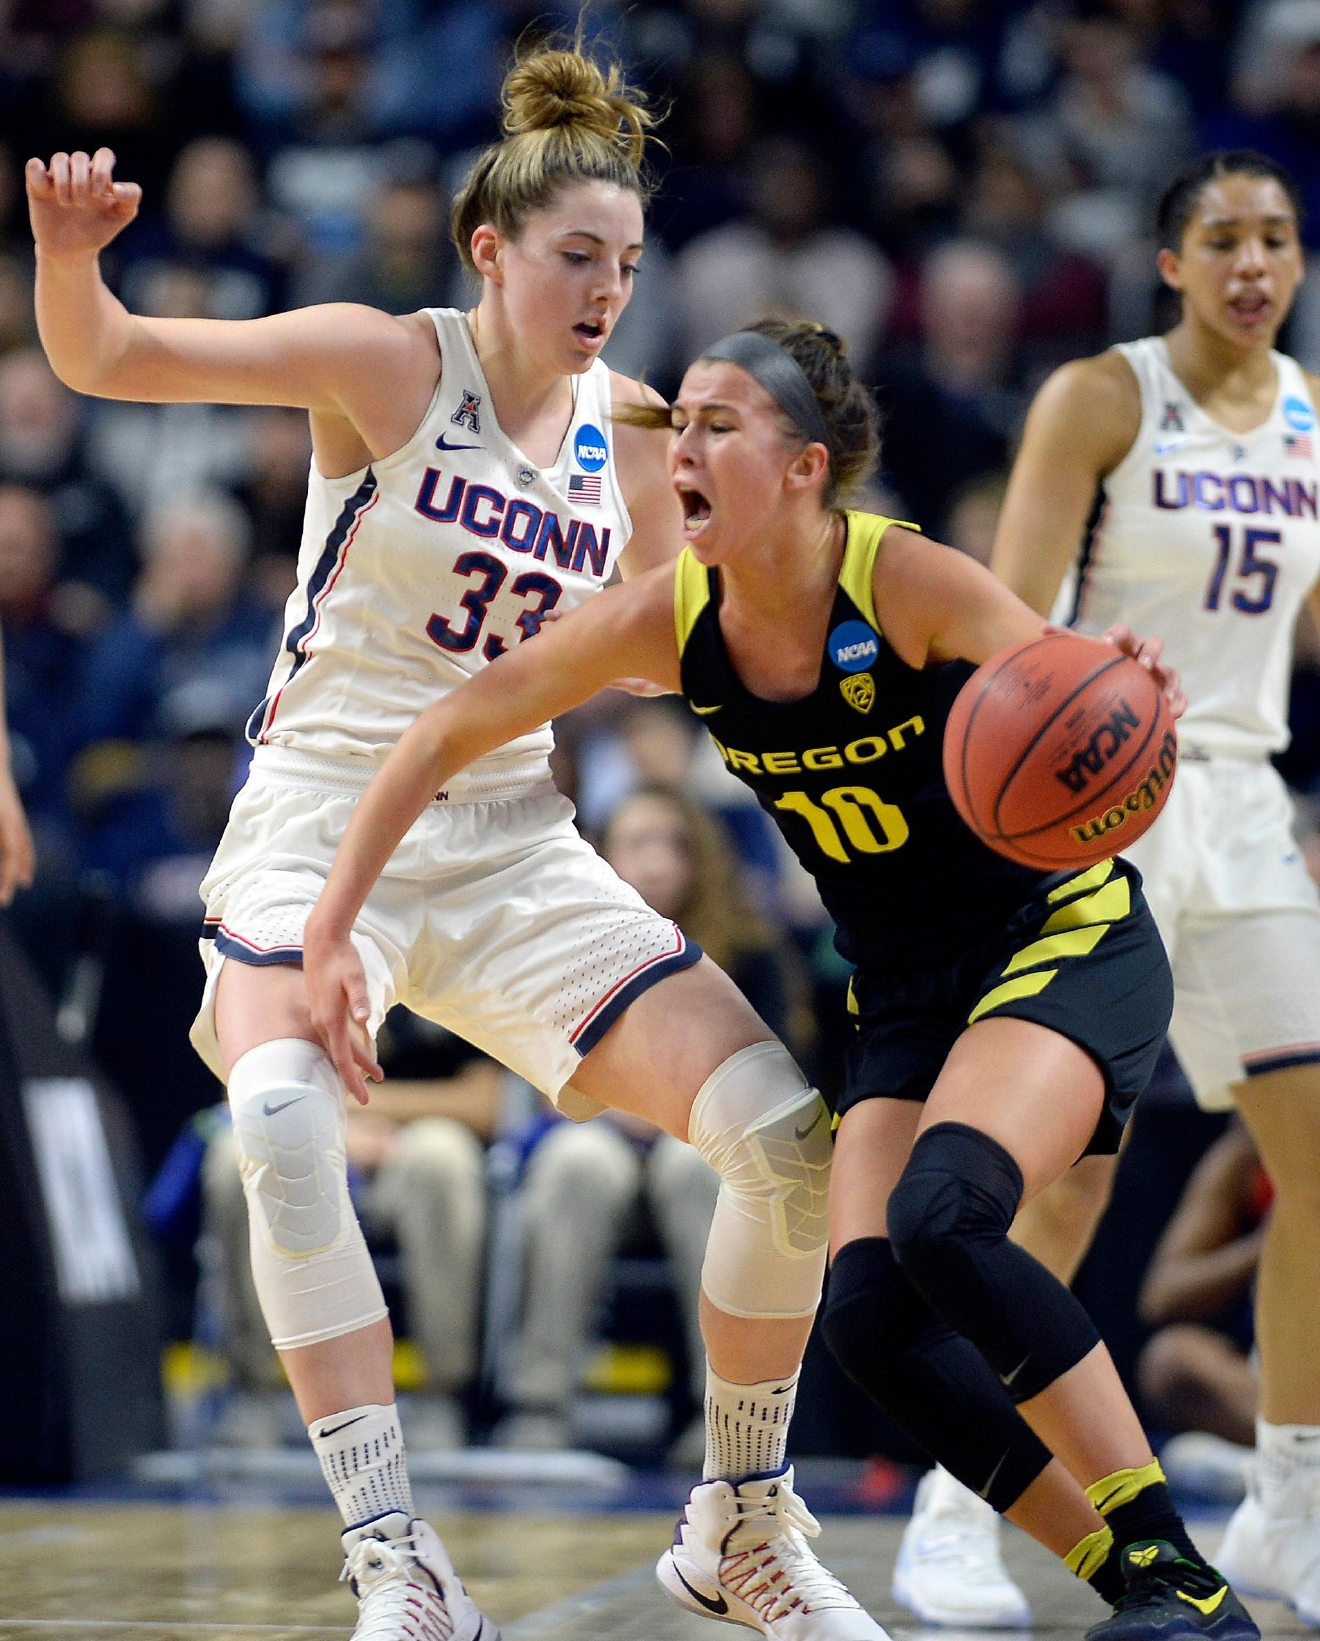 Connecticut's Katie Lou Samuelson, left, defends against Oregon's Lexi Bando, right, during the first half of a regional final game in the NCAA women's college basketball tournament, Monday, March 27, 2017, in Bridgeport, Conn. (AP Photo/Jessica Hill)